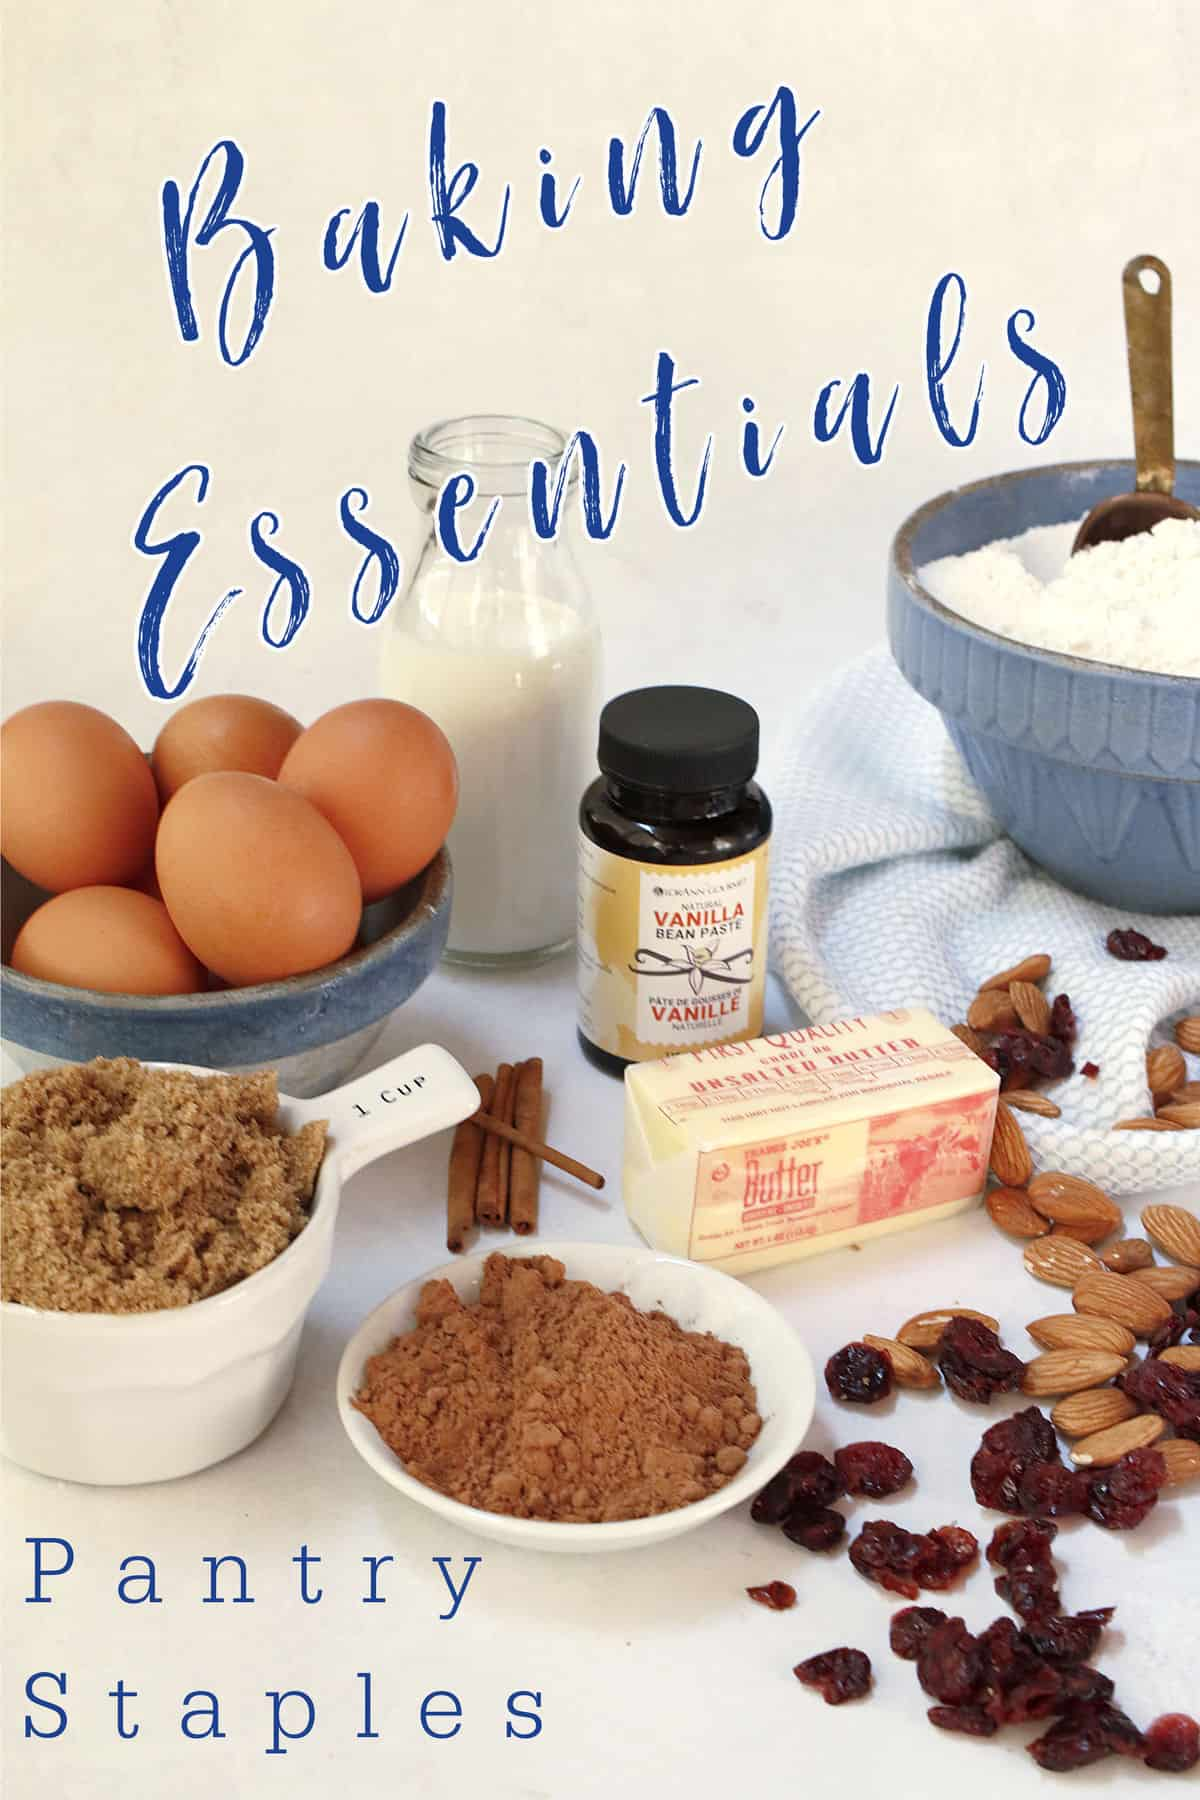 A picture showing baking essentials for your pantry